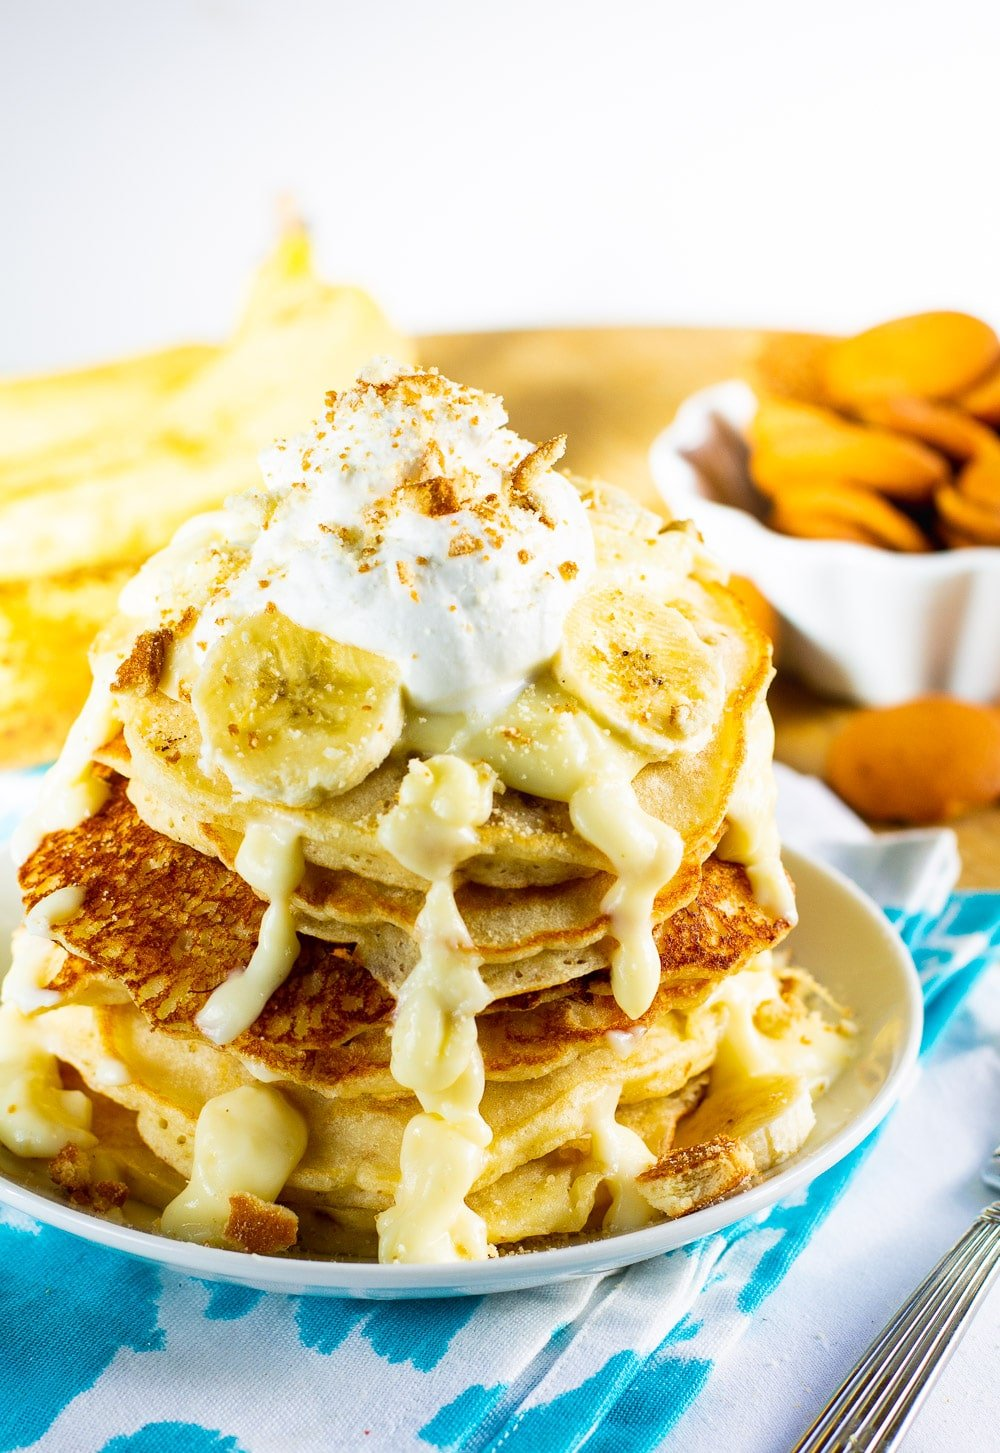 Pancakes on a plate with bananas and vanilla wafers in background.